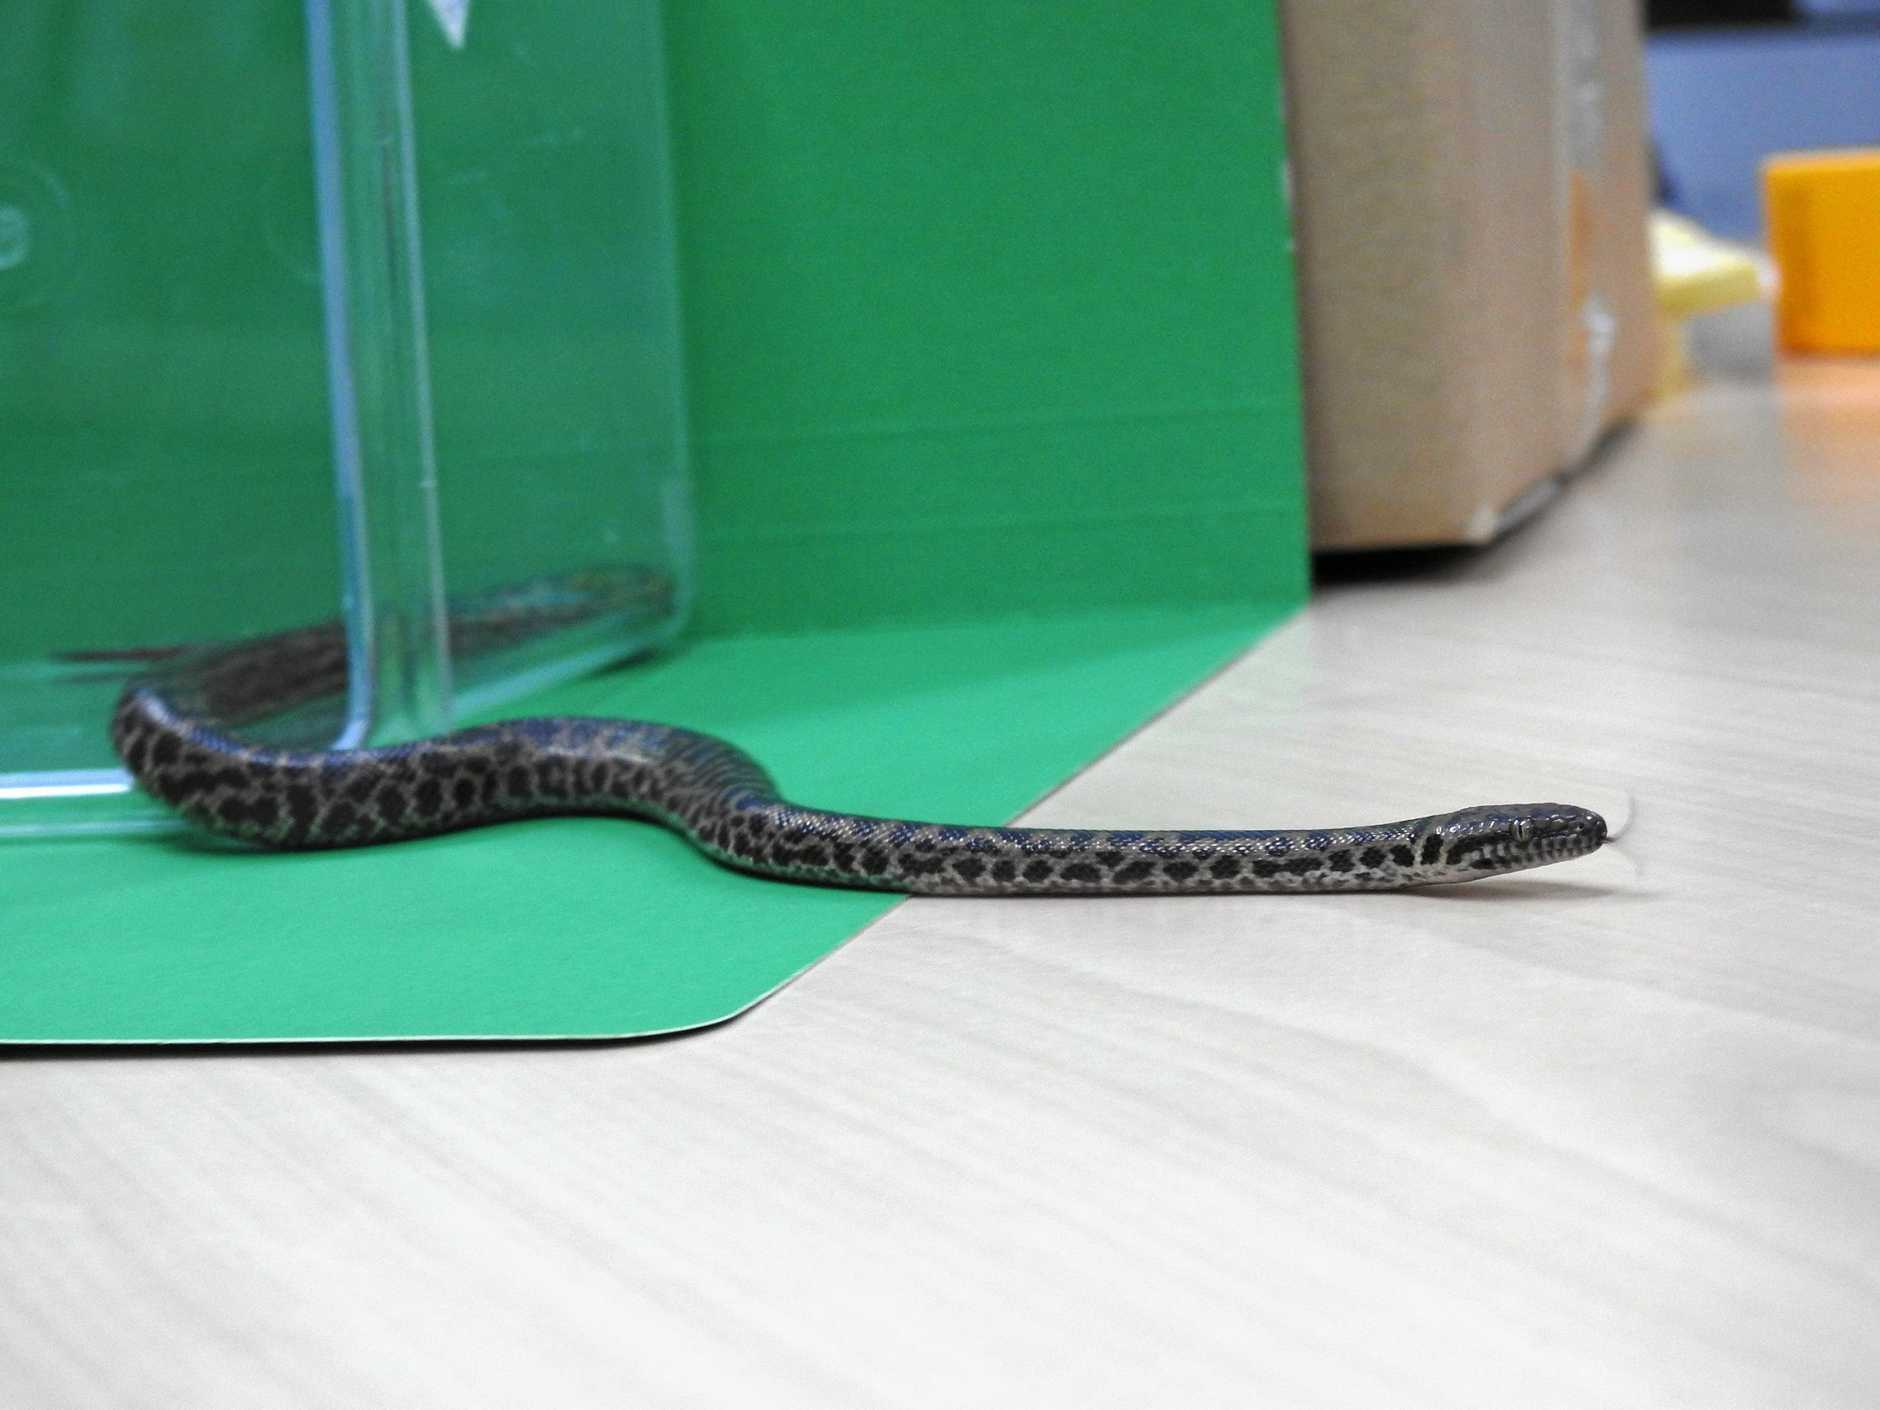 The spotted python a man allegedly tried to bring into Mackay courthouse.